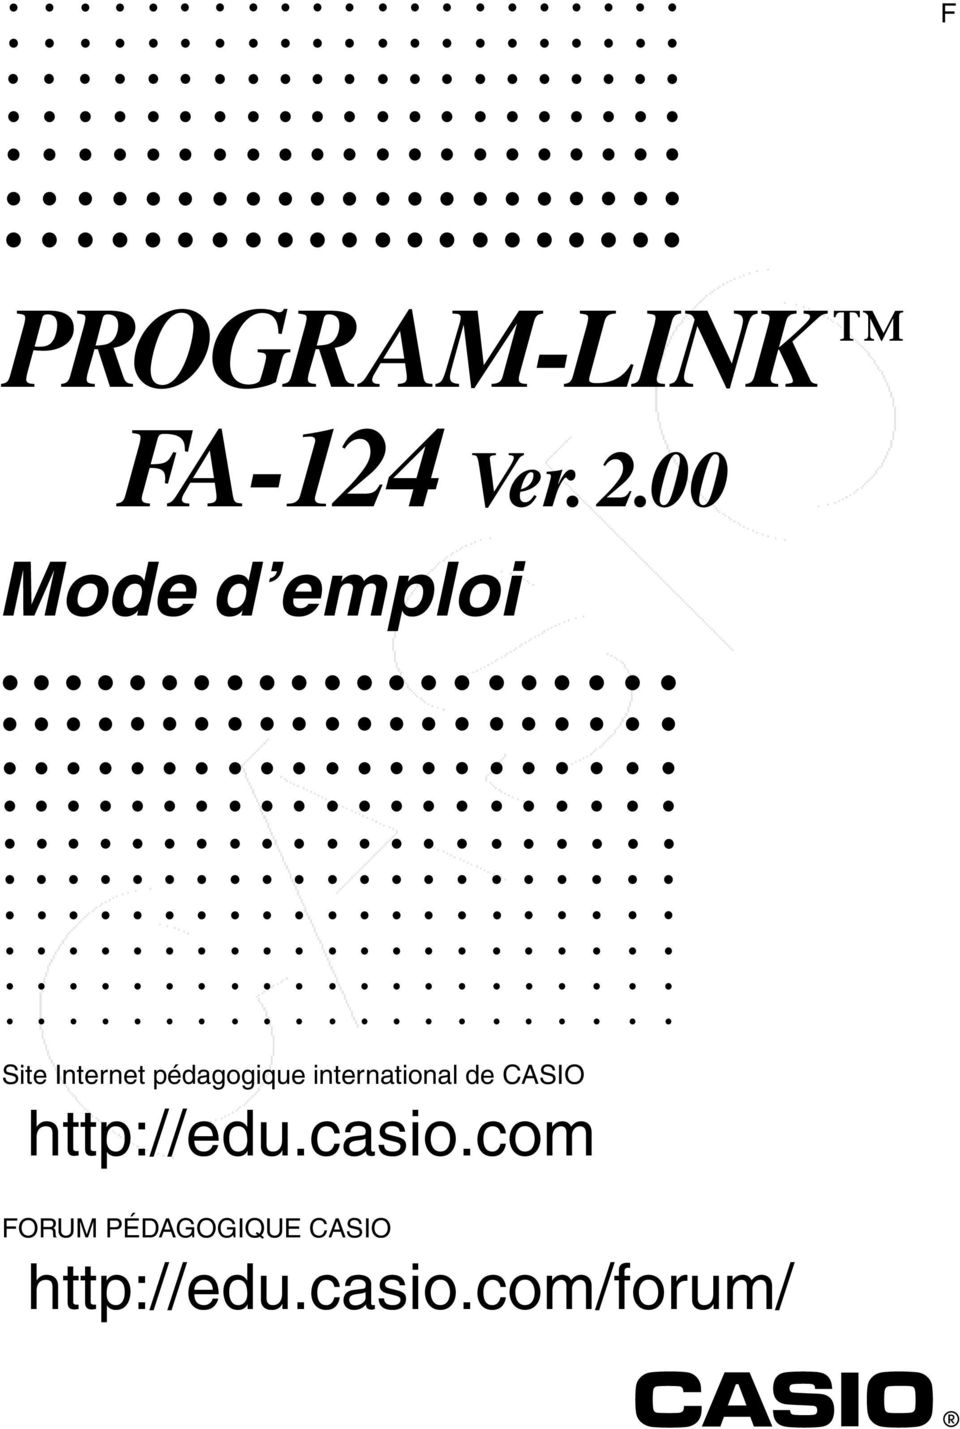 international de CASIO http://edu.casio.